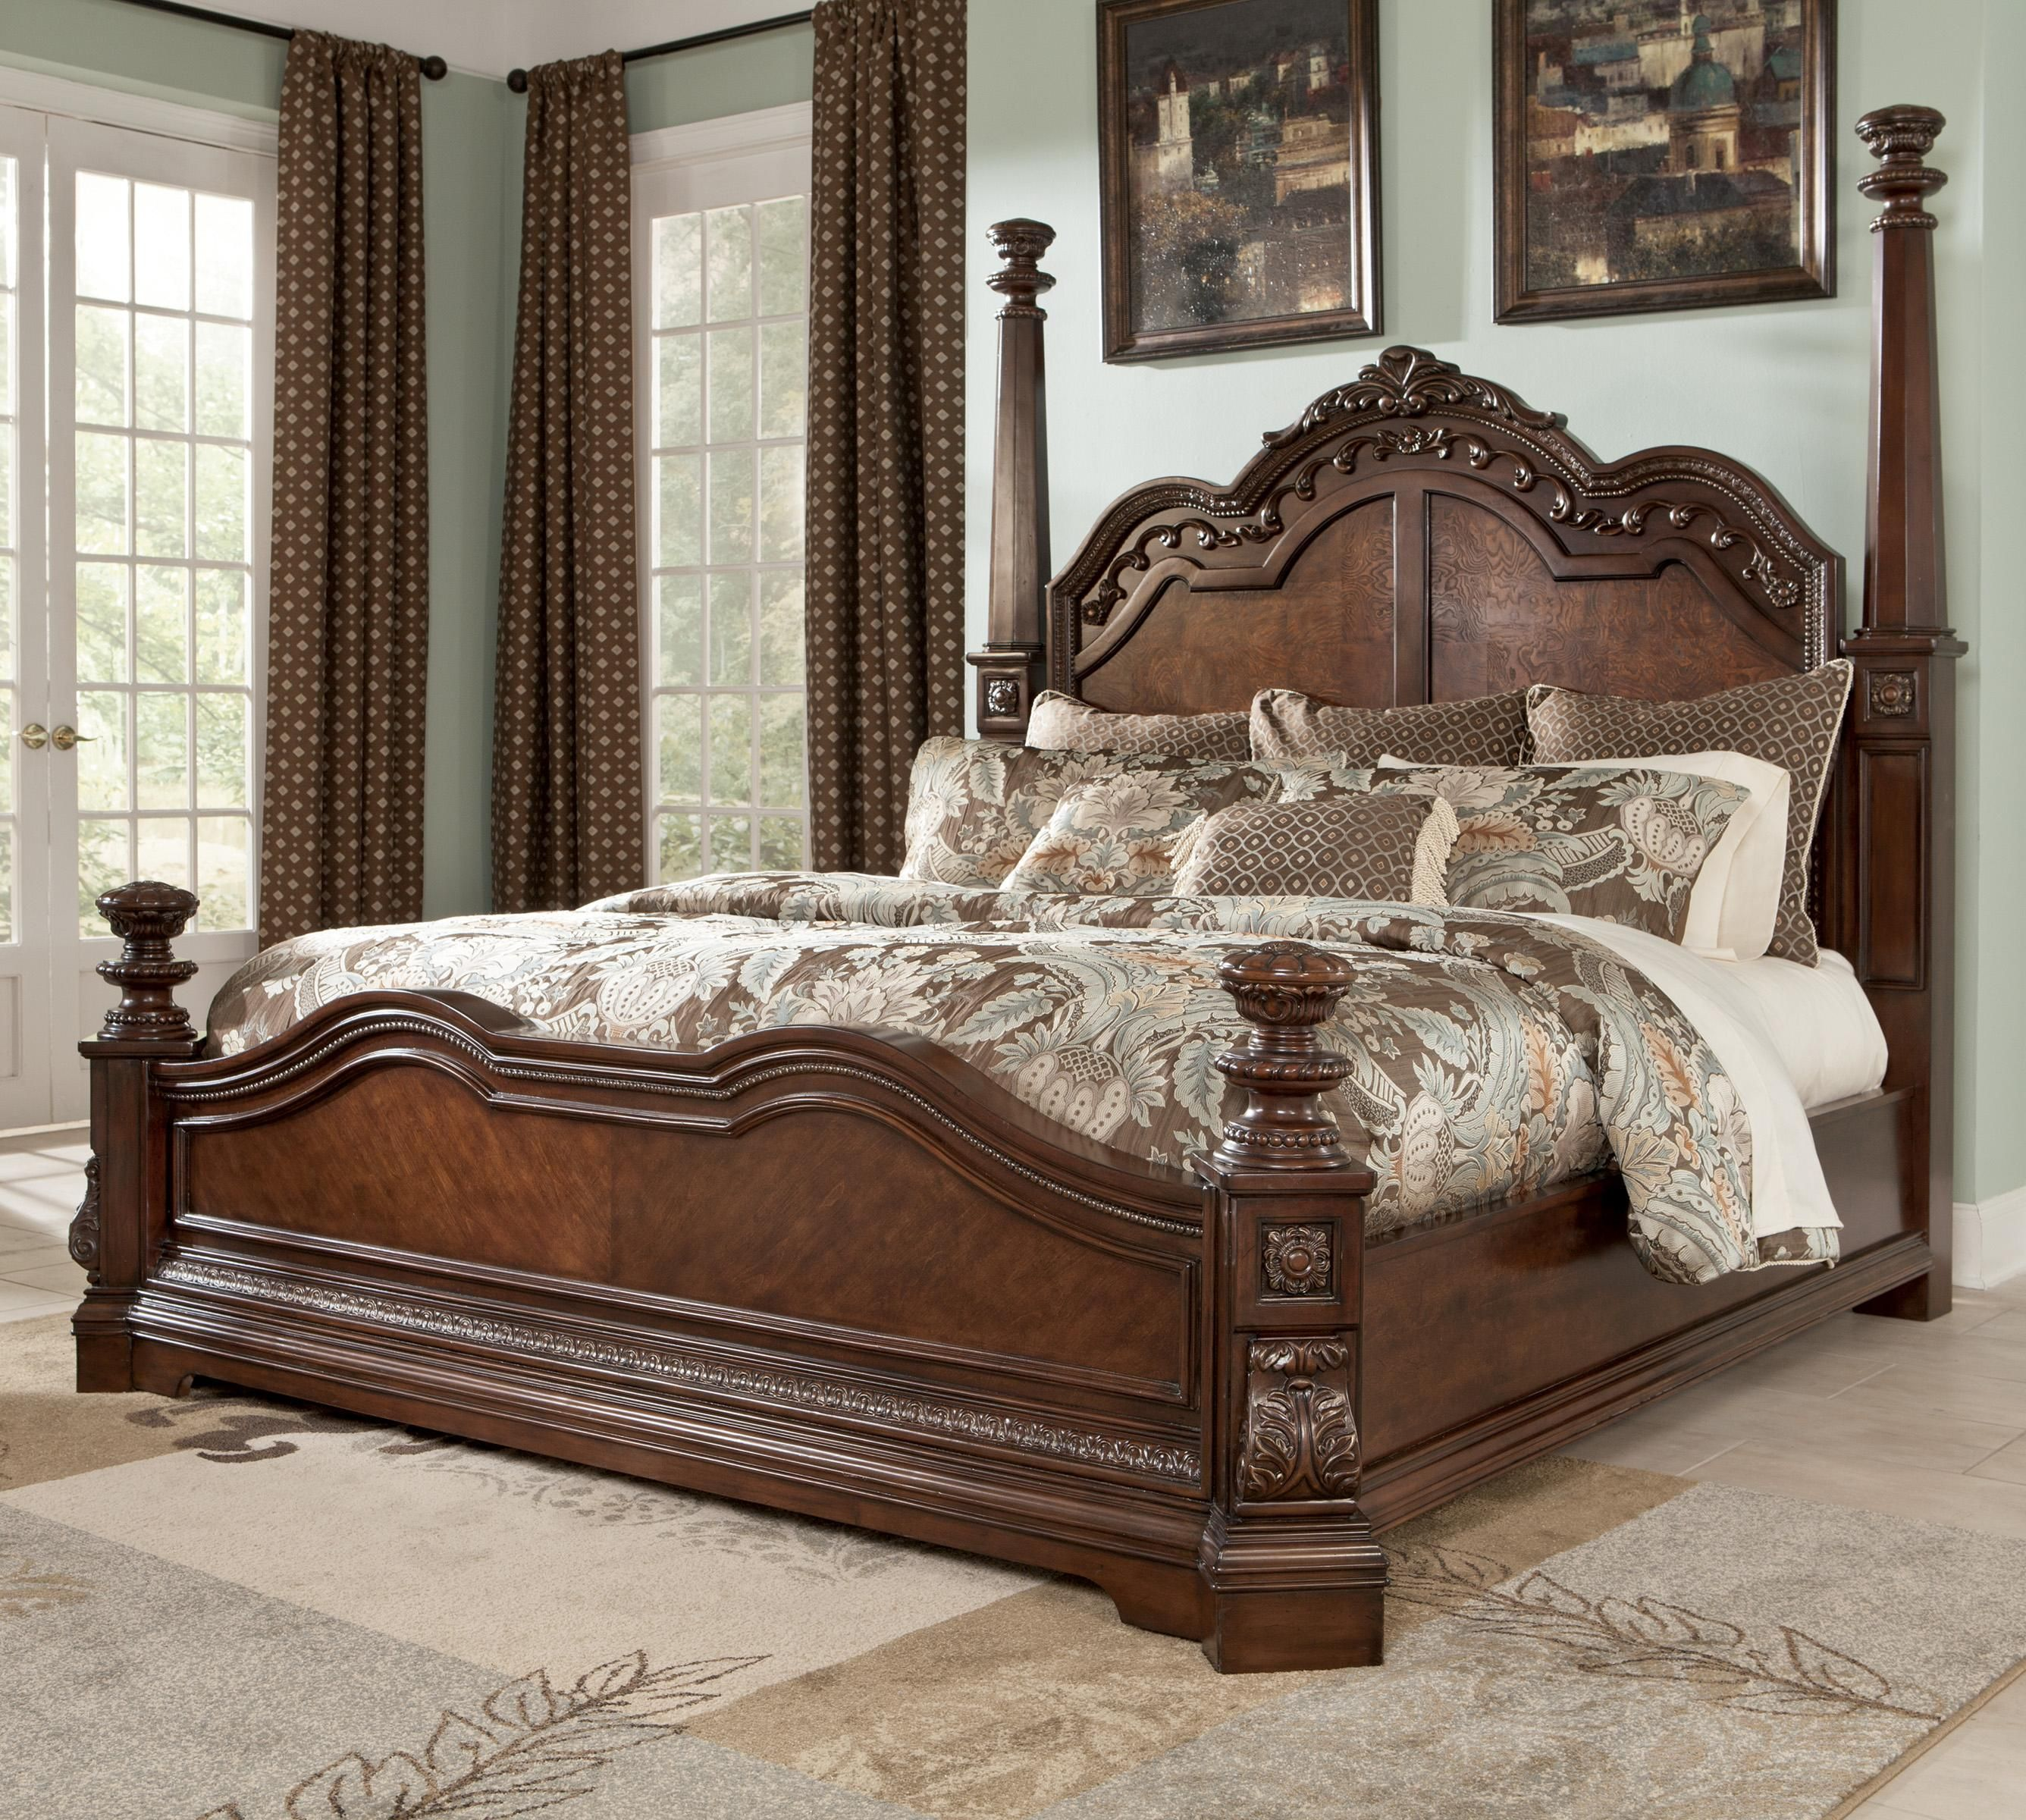 ledelle traditional king poster bed with tall headboard